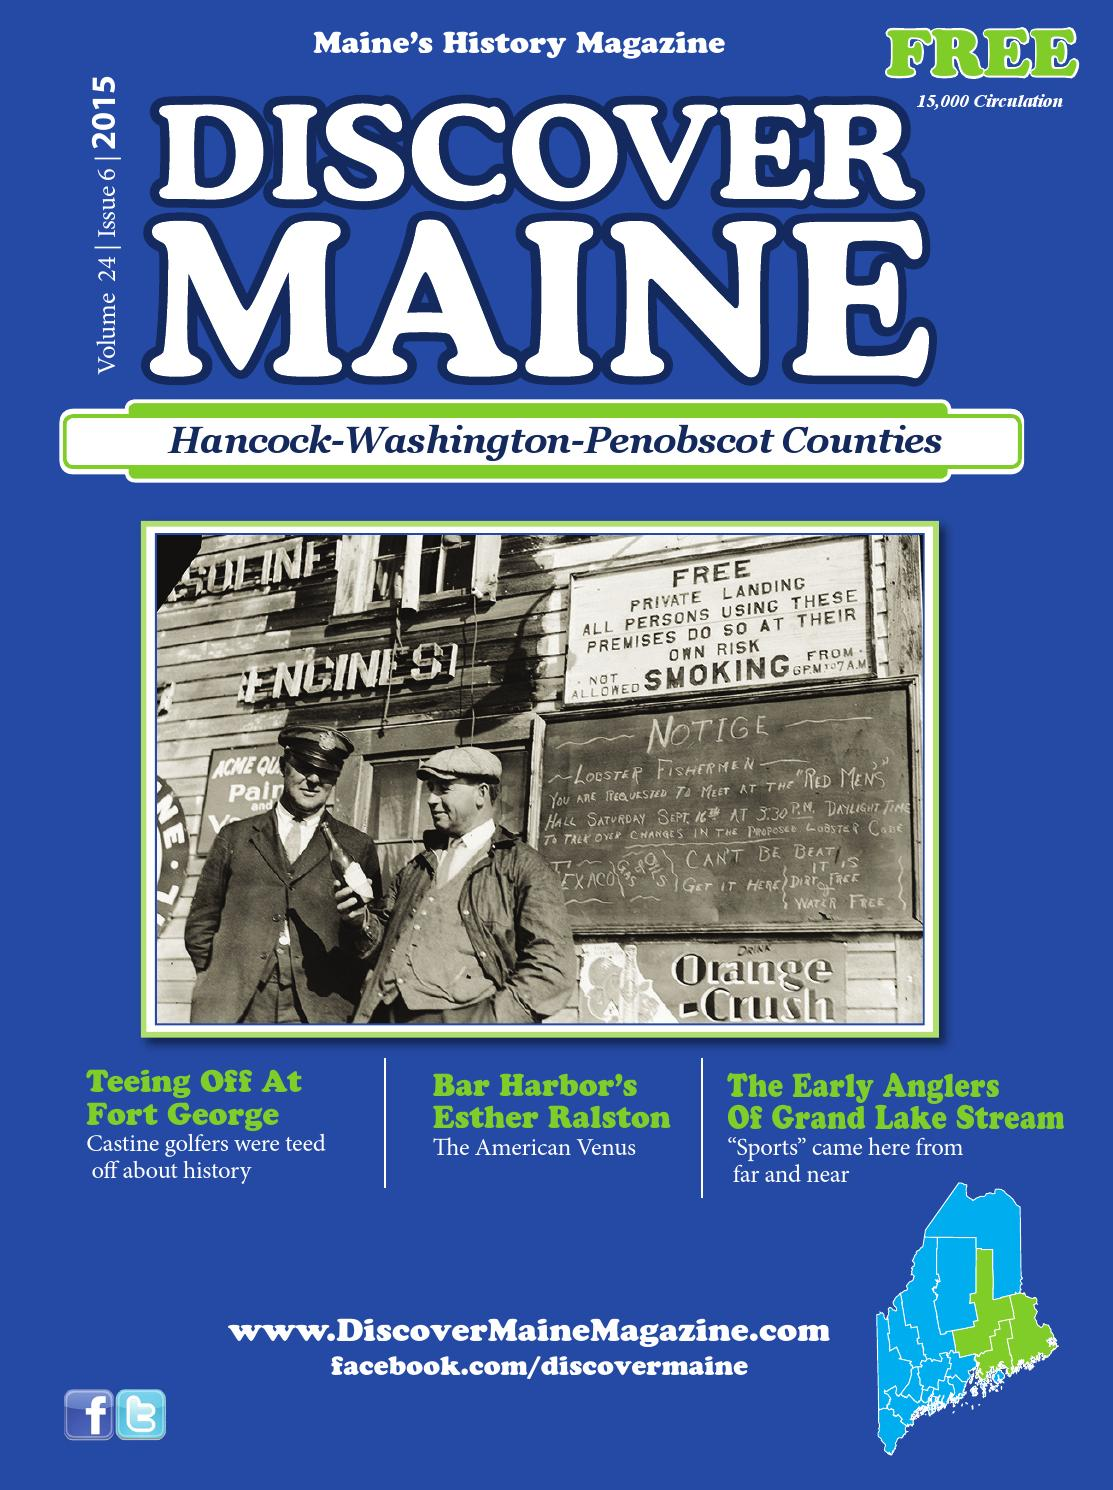 androscoggin oxford sebago by discover maine magazine issuu hancock washington penobscot counties